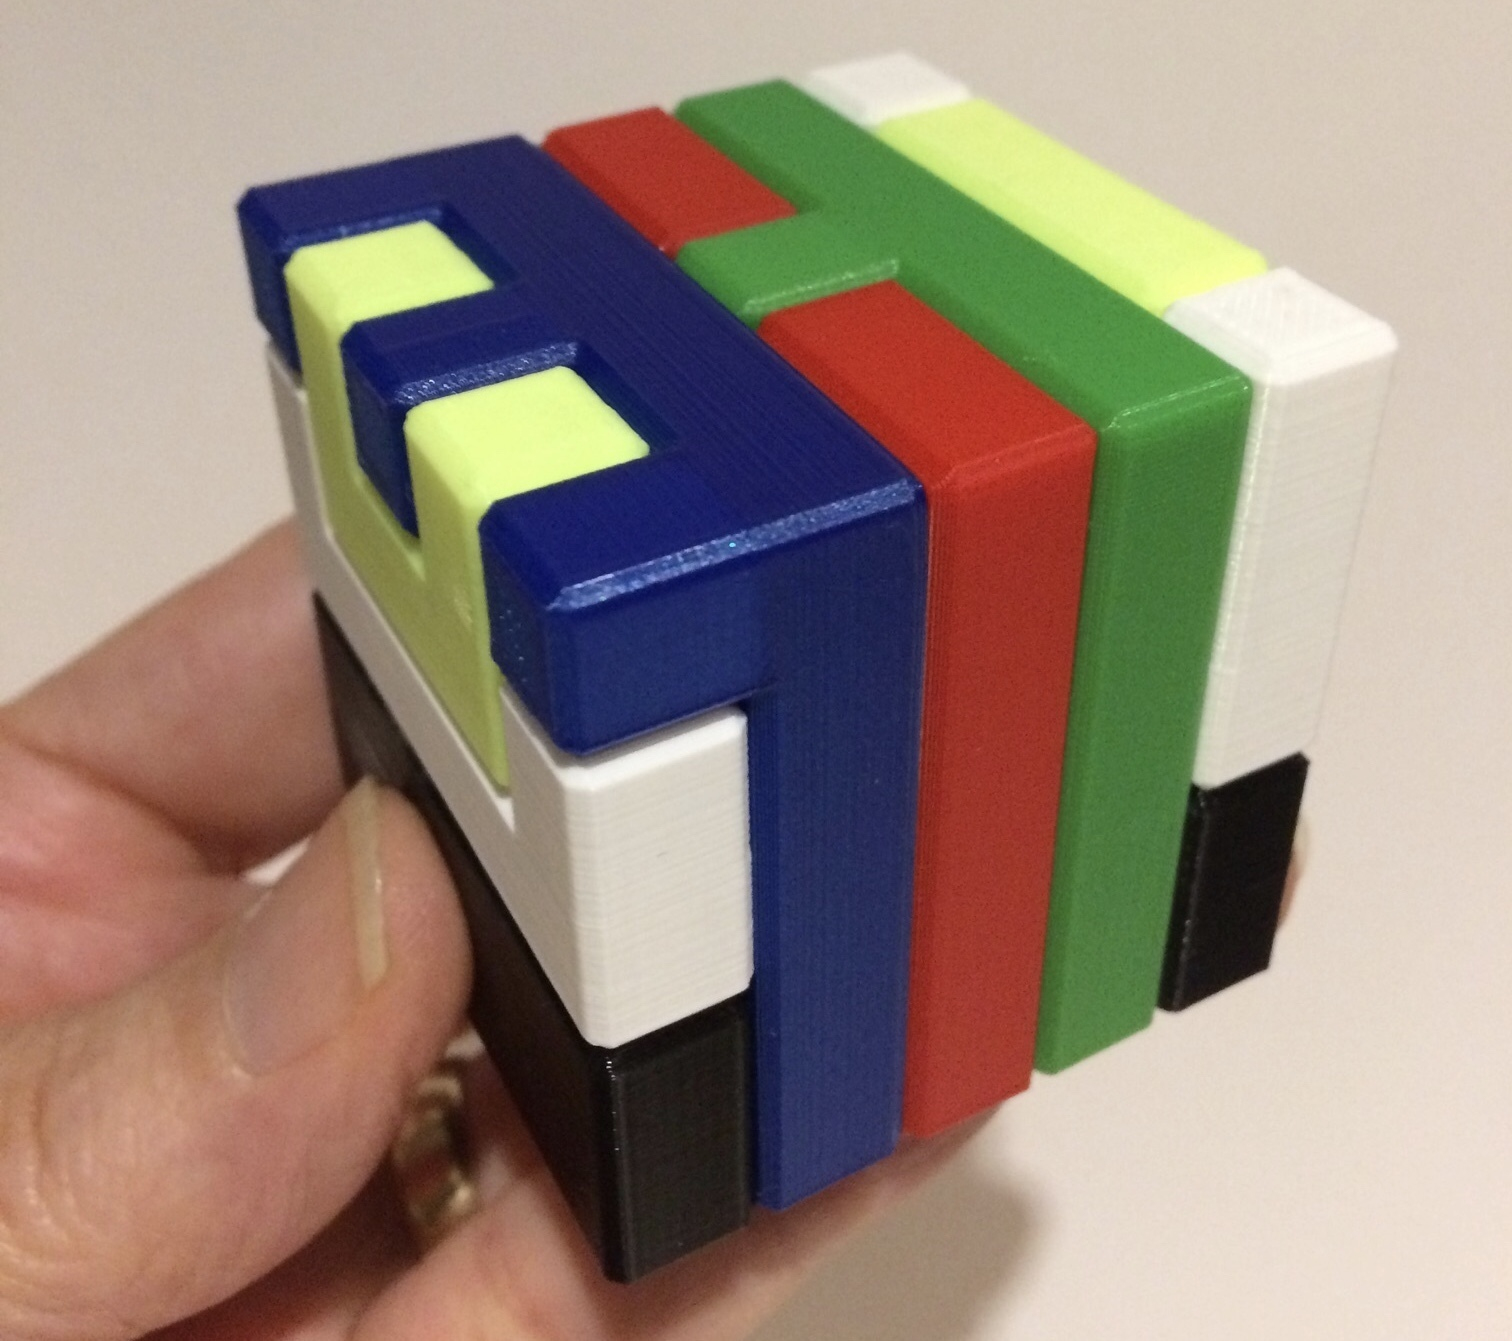 3D Printed Printable Interlocking Puzzle #4 - Level 11Richgain - Printable 3D Puzzle